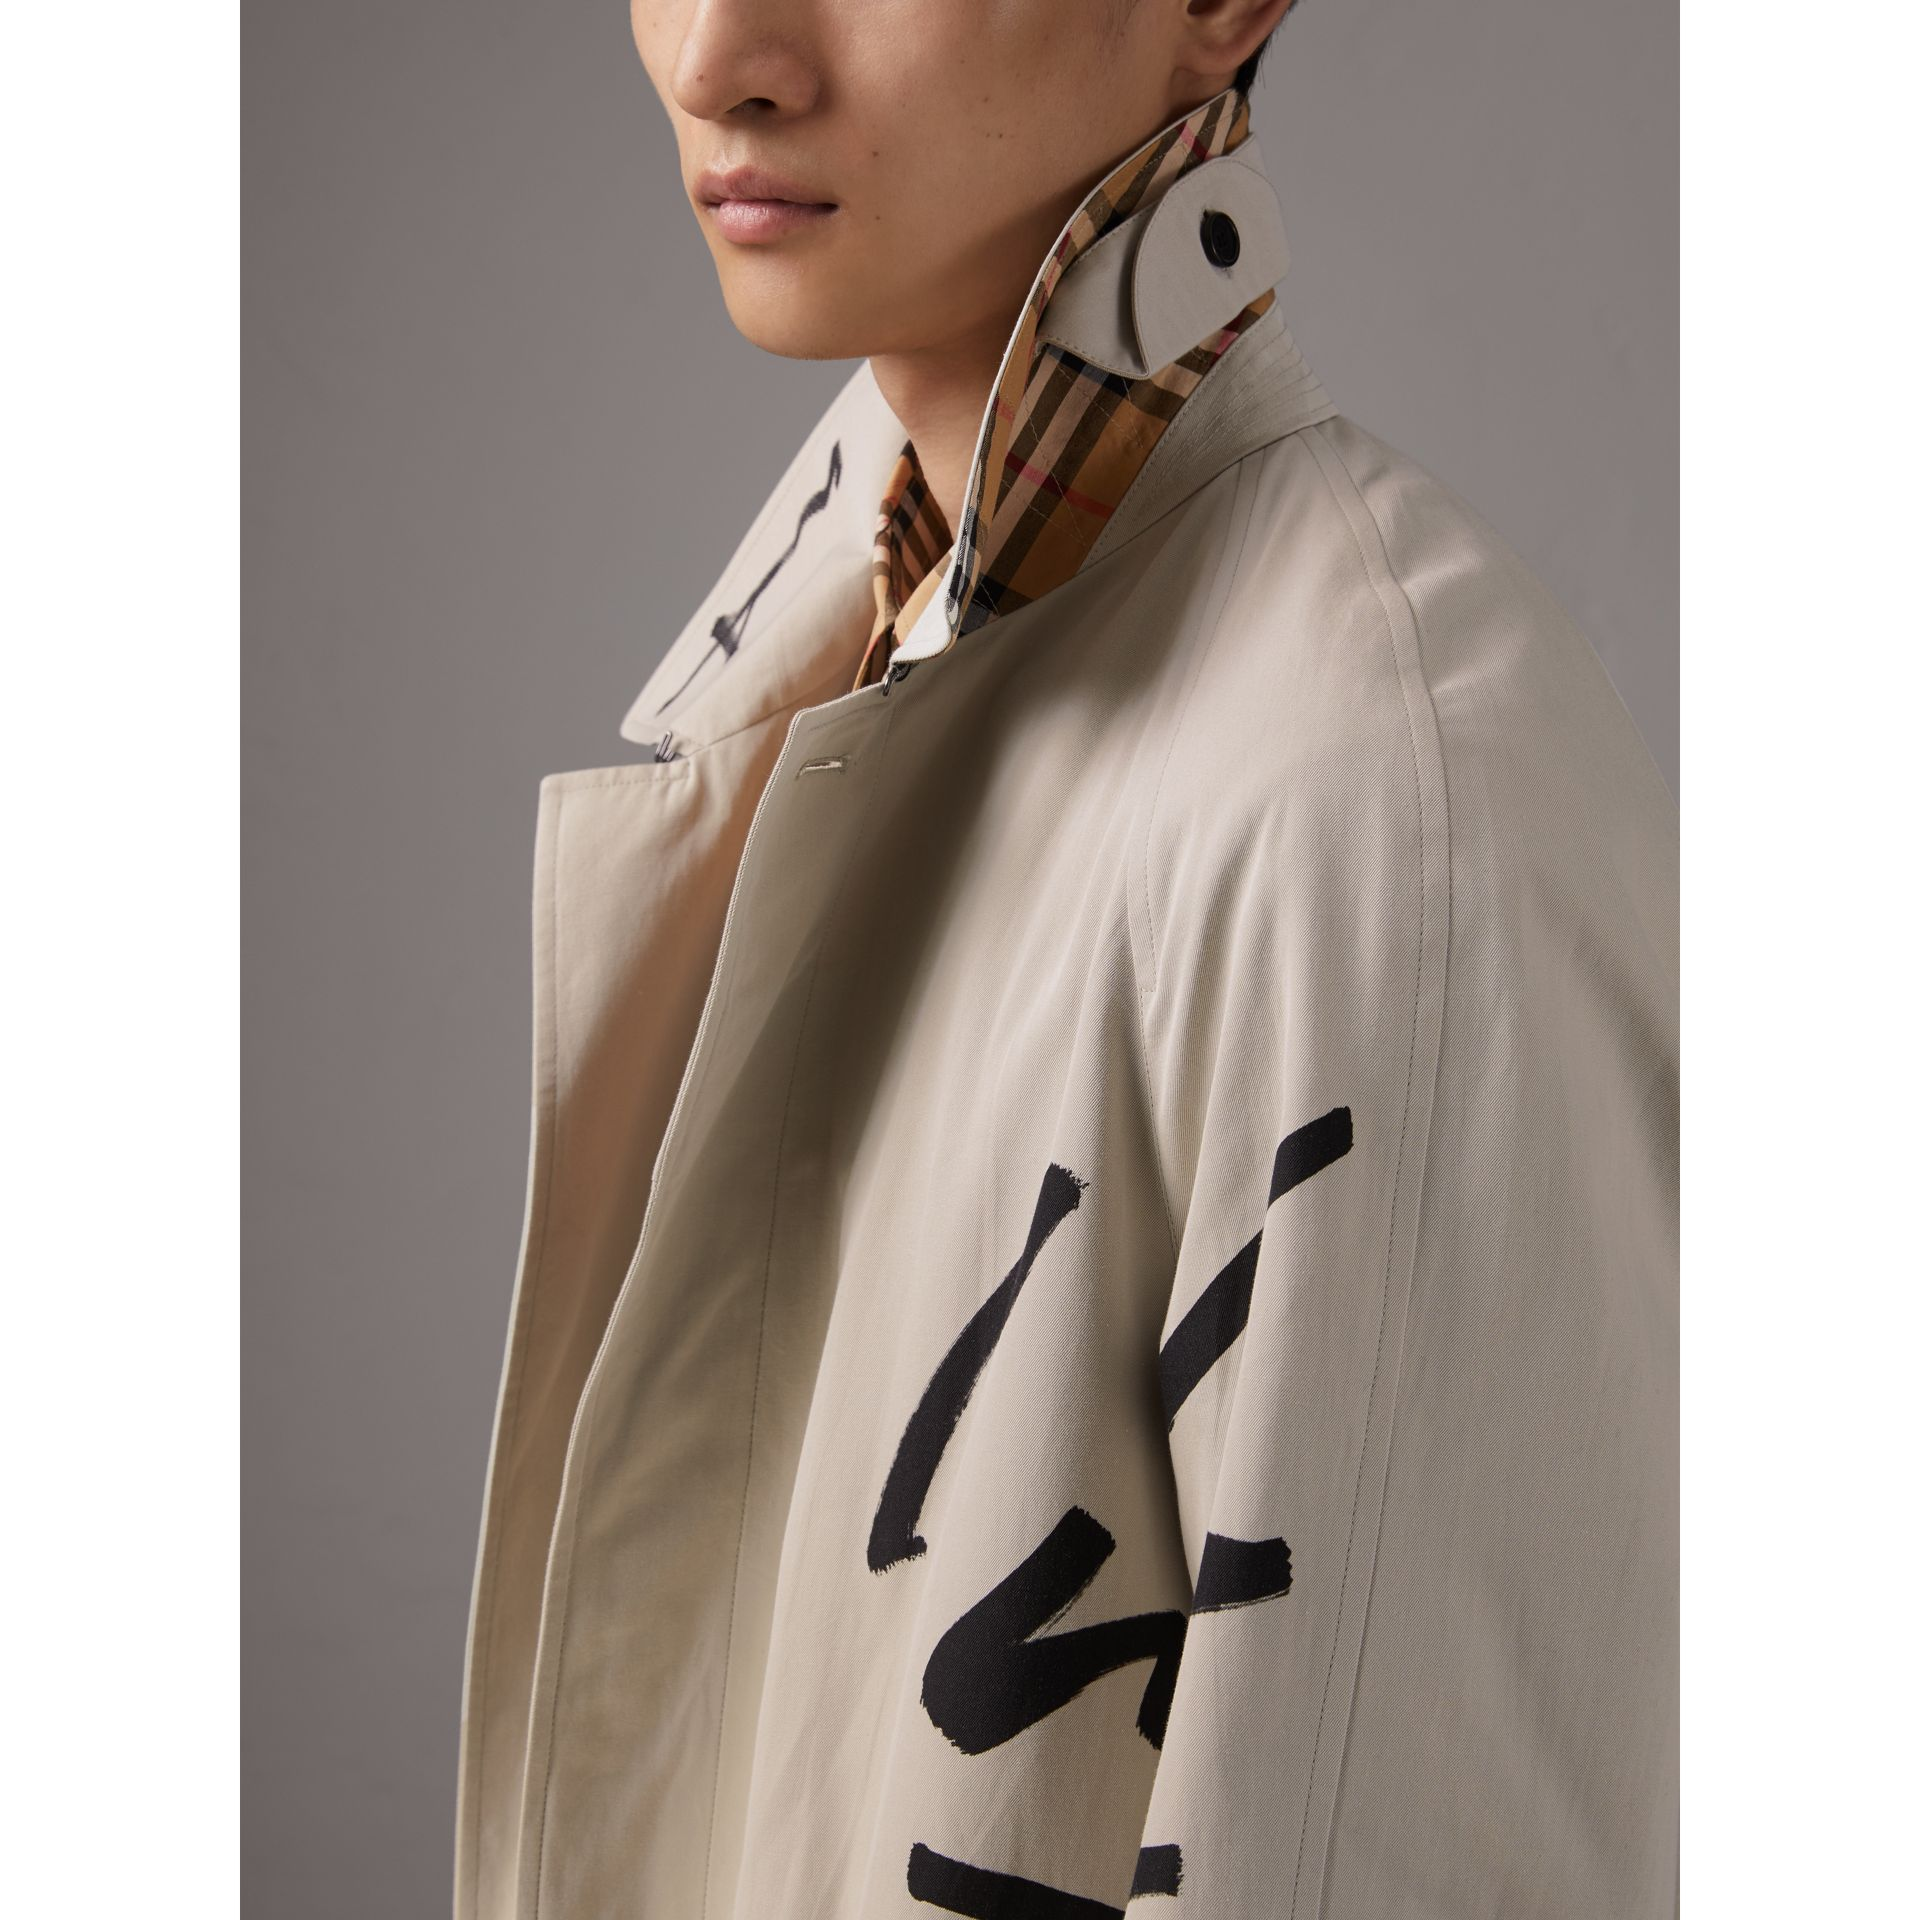 Burberry x Kris Wu Gabardine Car Coat in Stone - Men | Burberry Singapore - gallery image 5